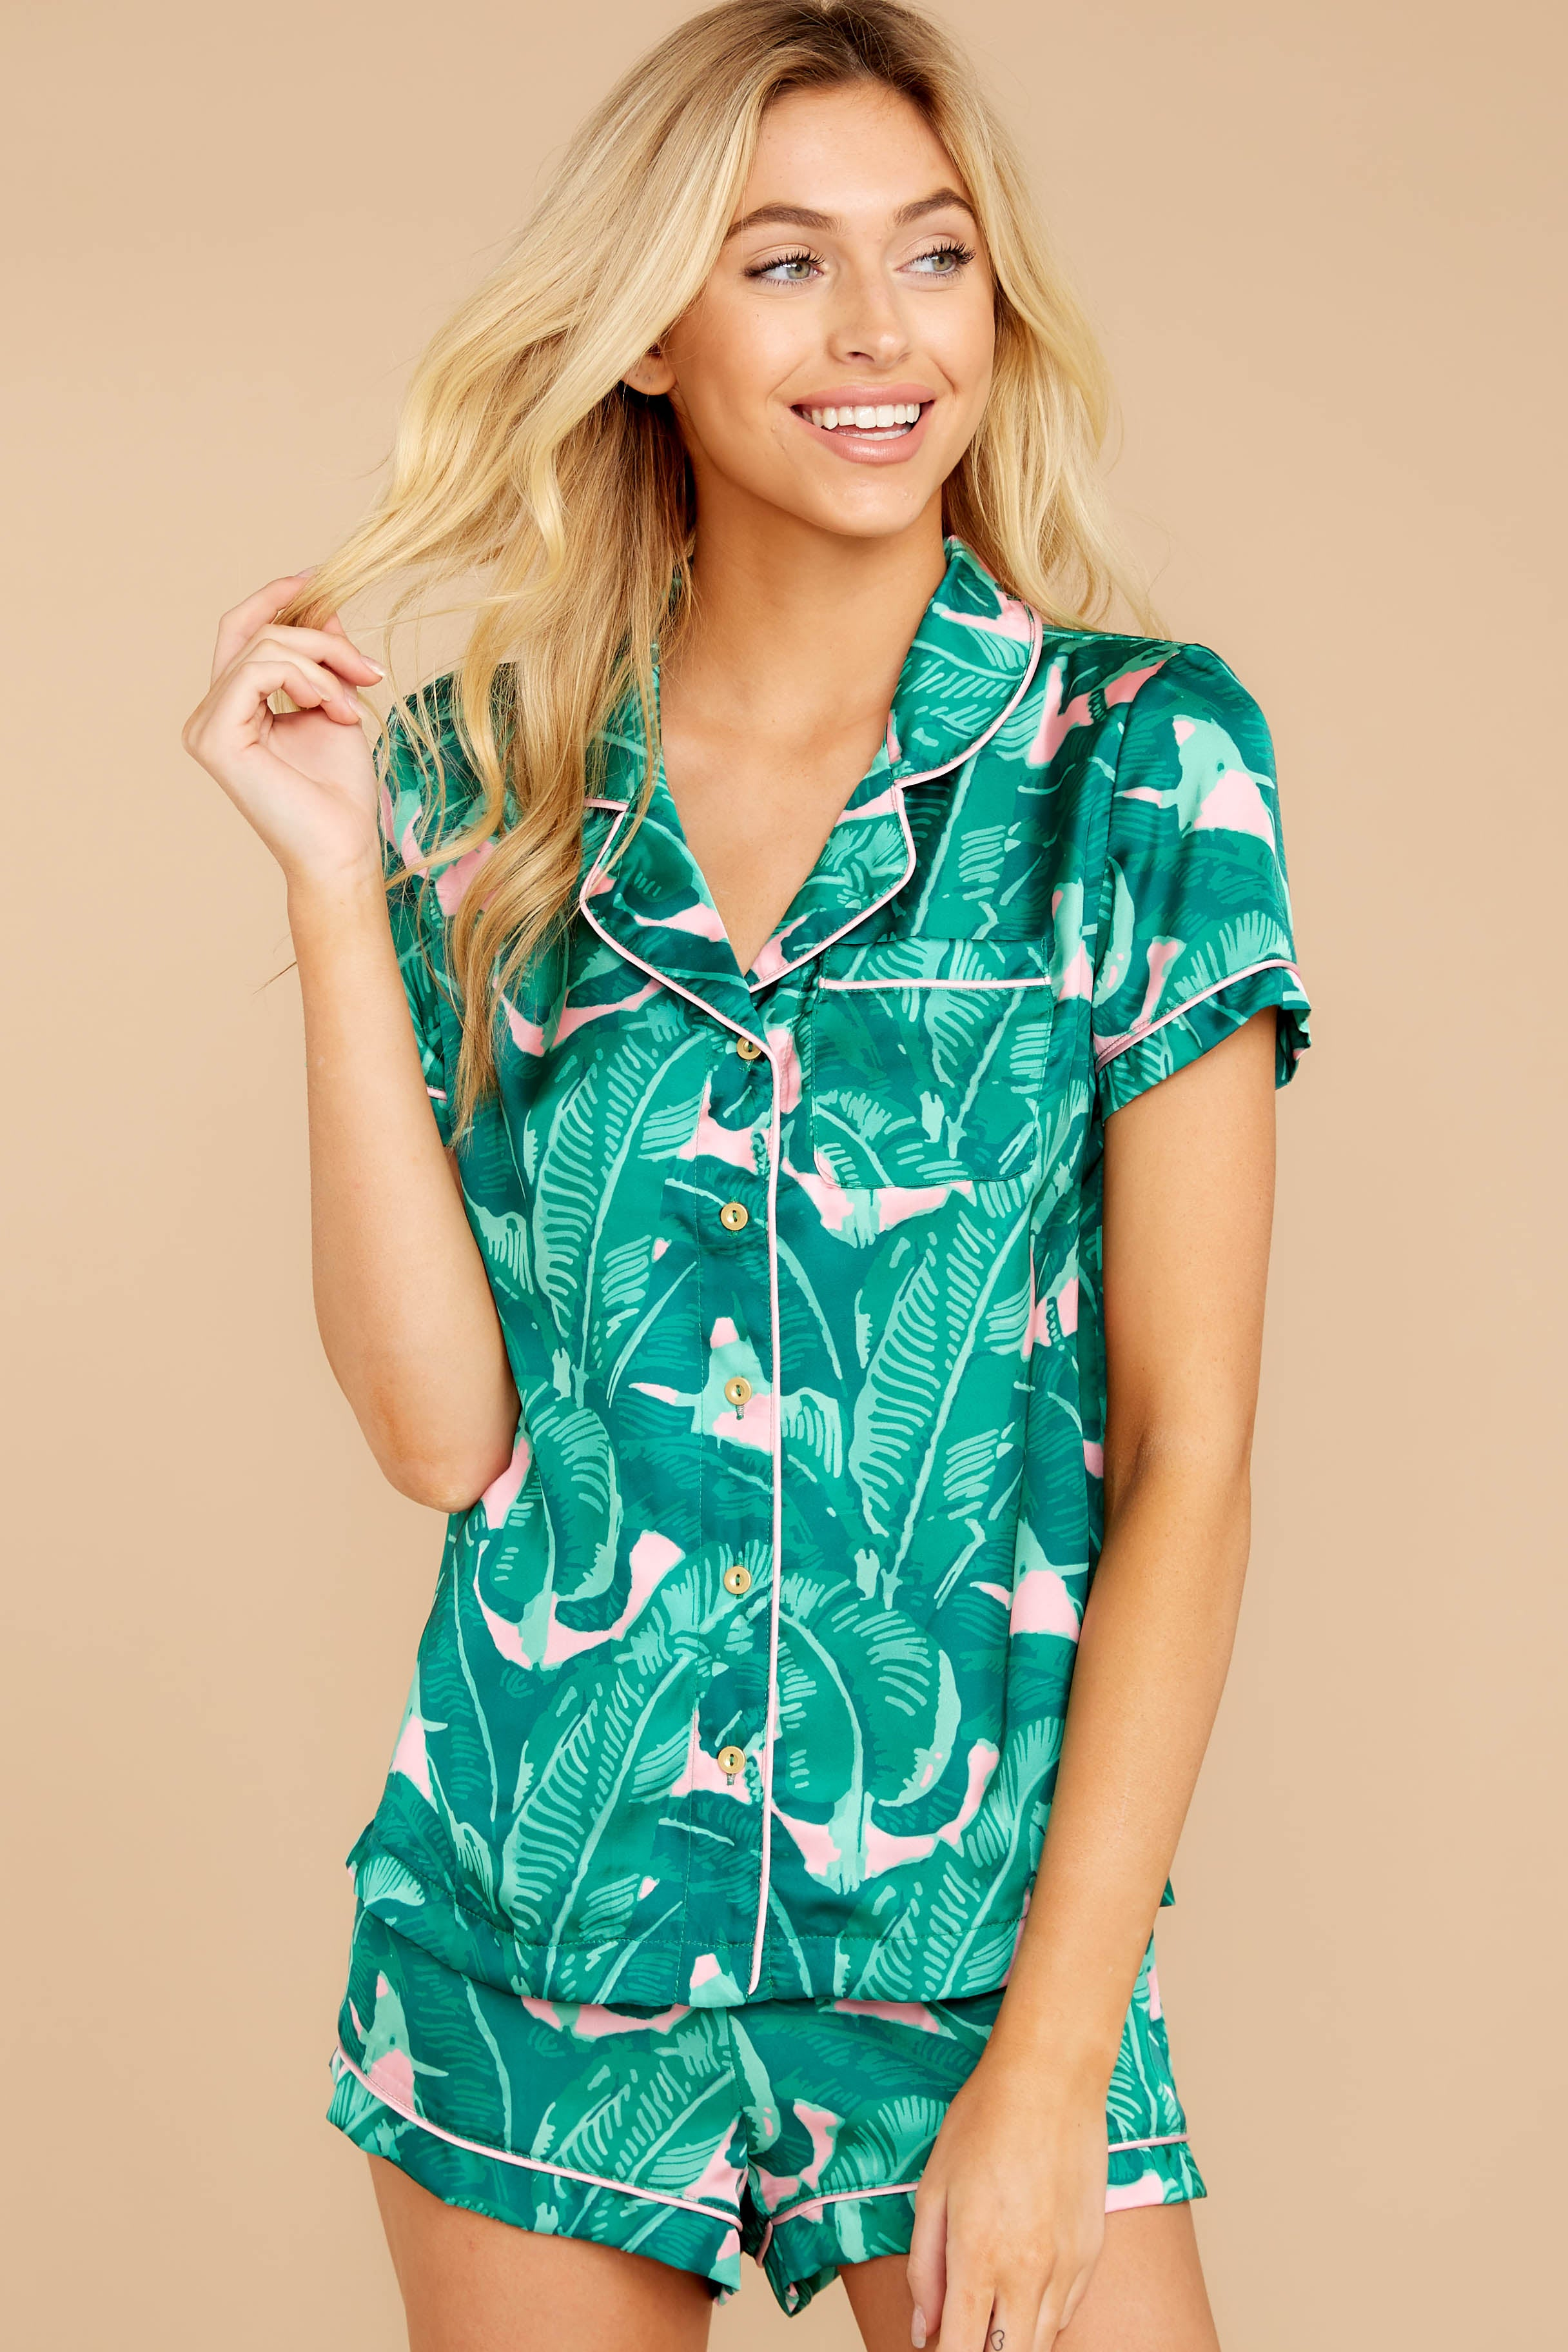 Essential Enthusiasm Pink And Green Palm Print Pajama Top